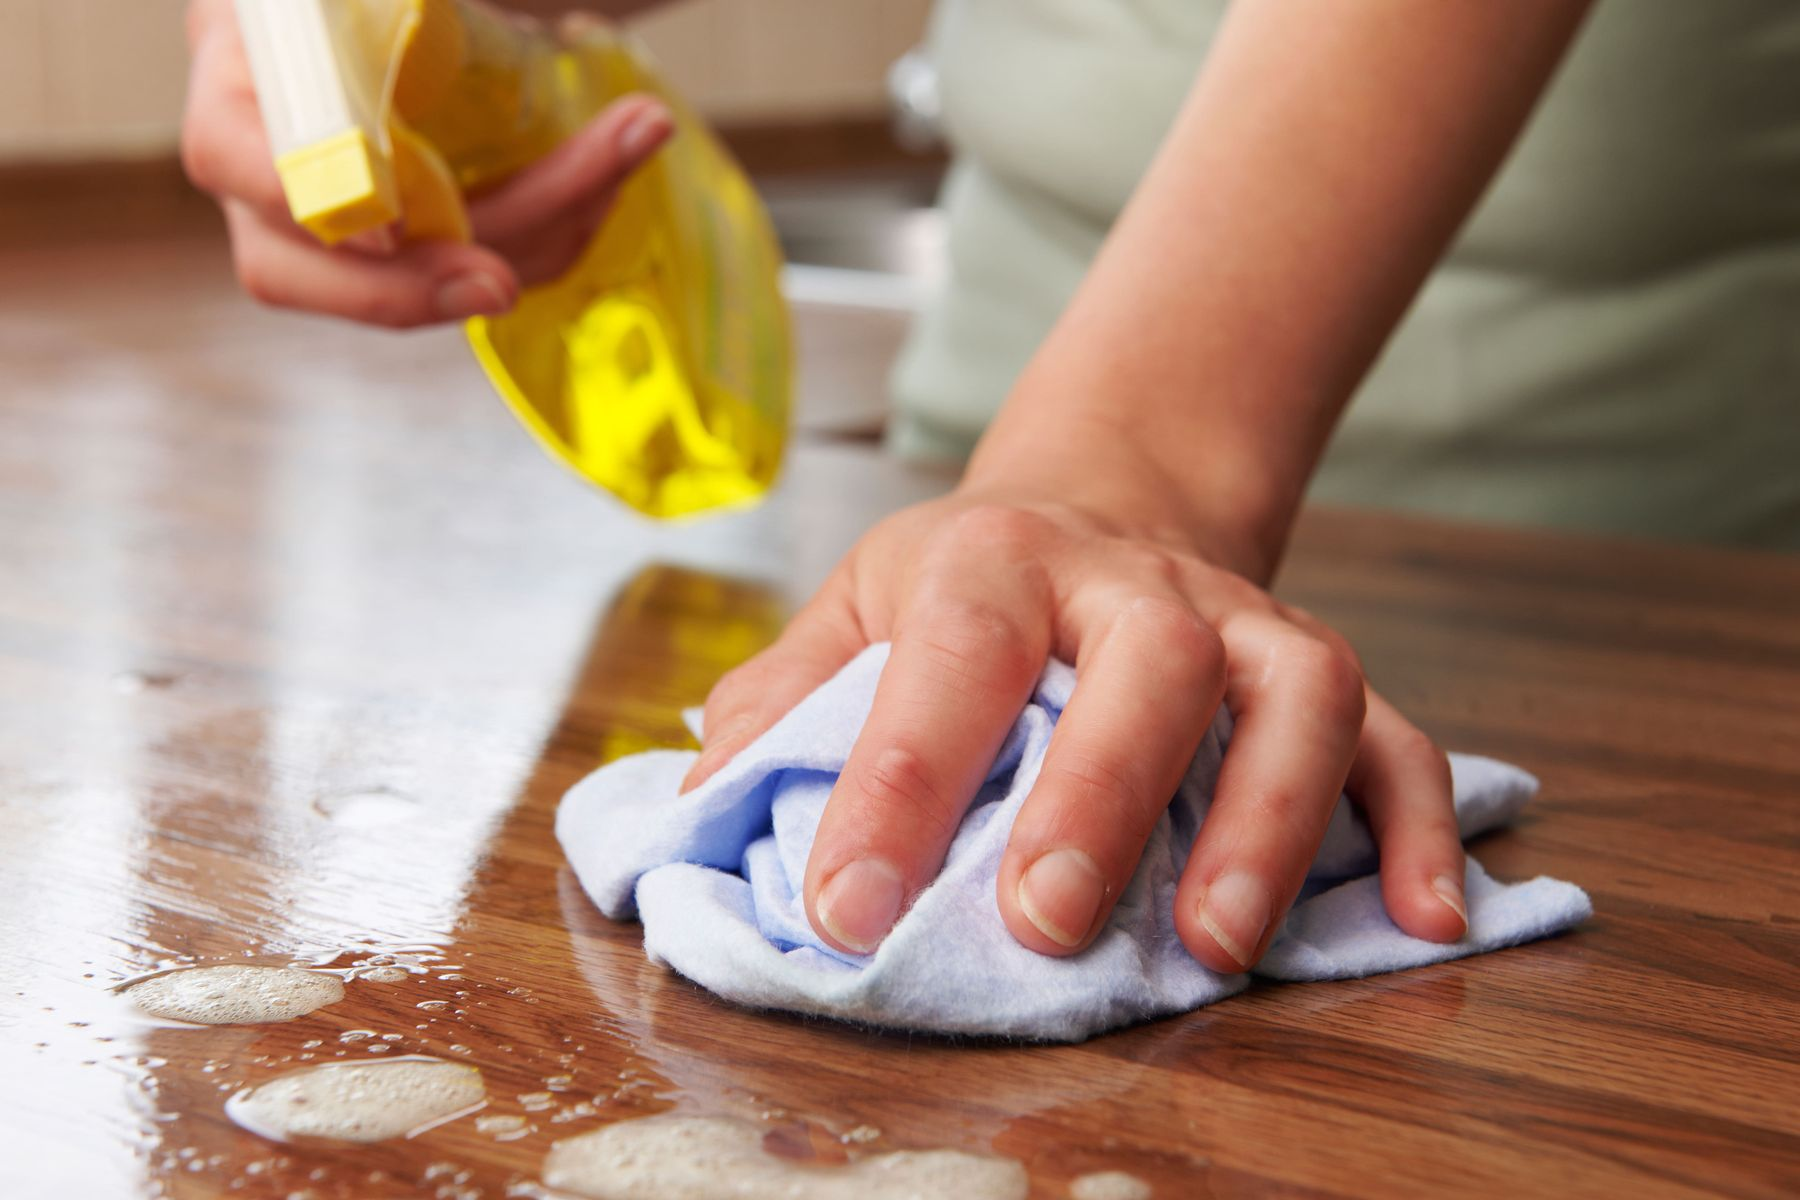 This simple home hack can help you get rid of nasty sticky stains with ease